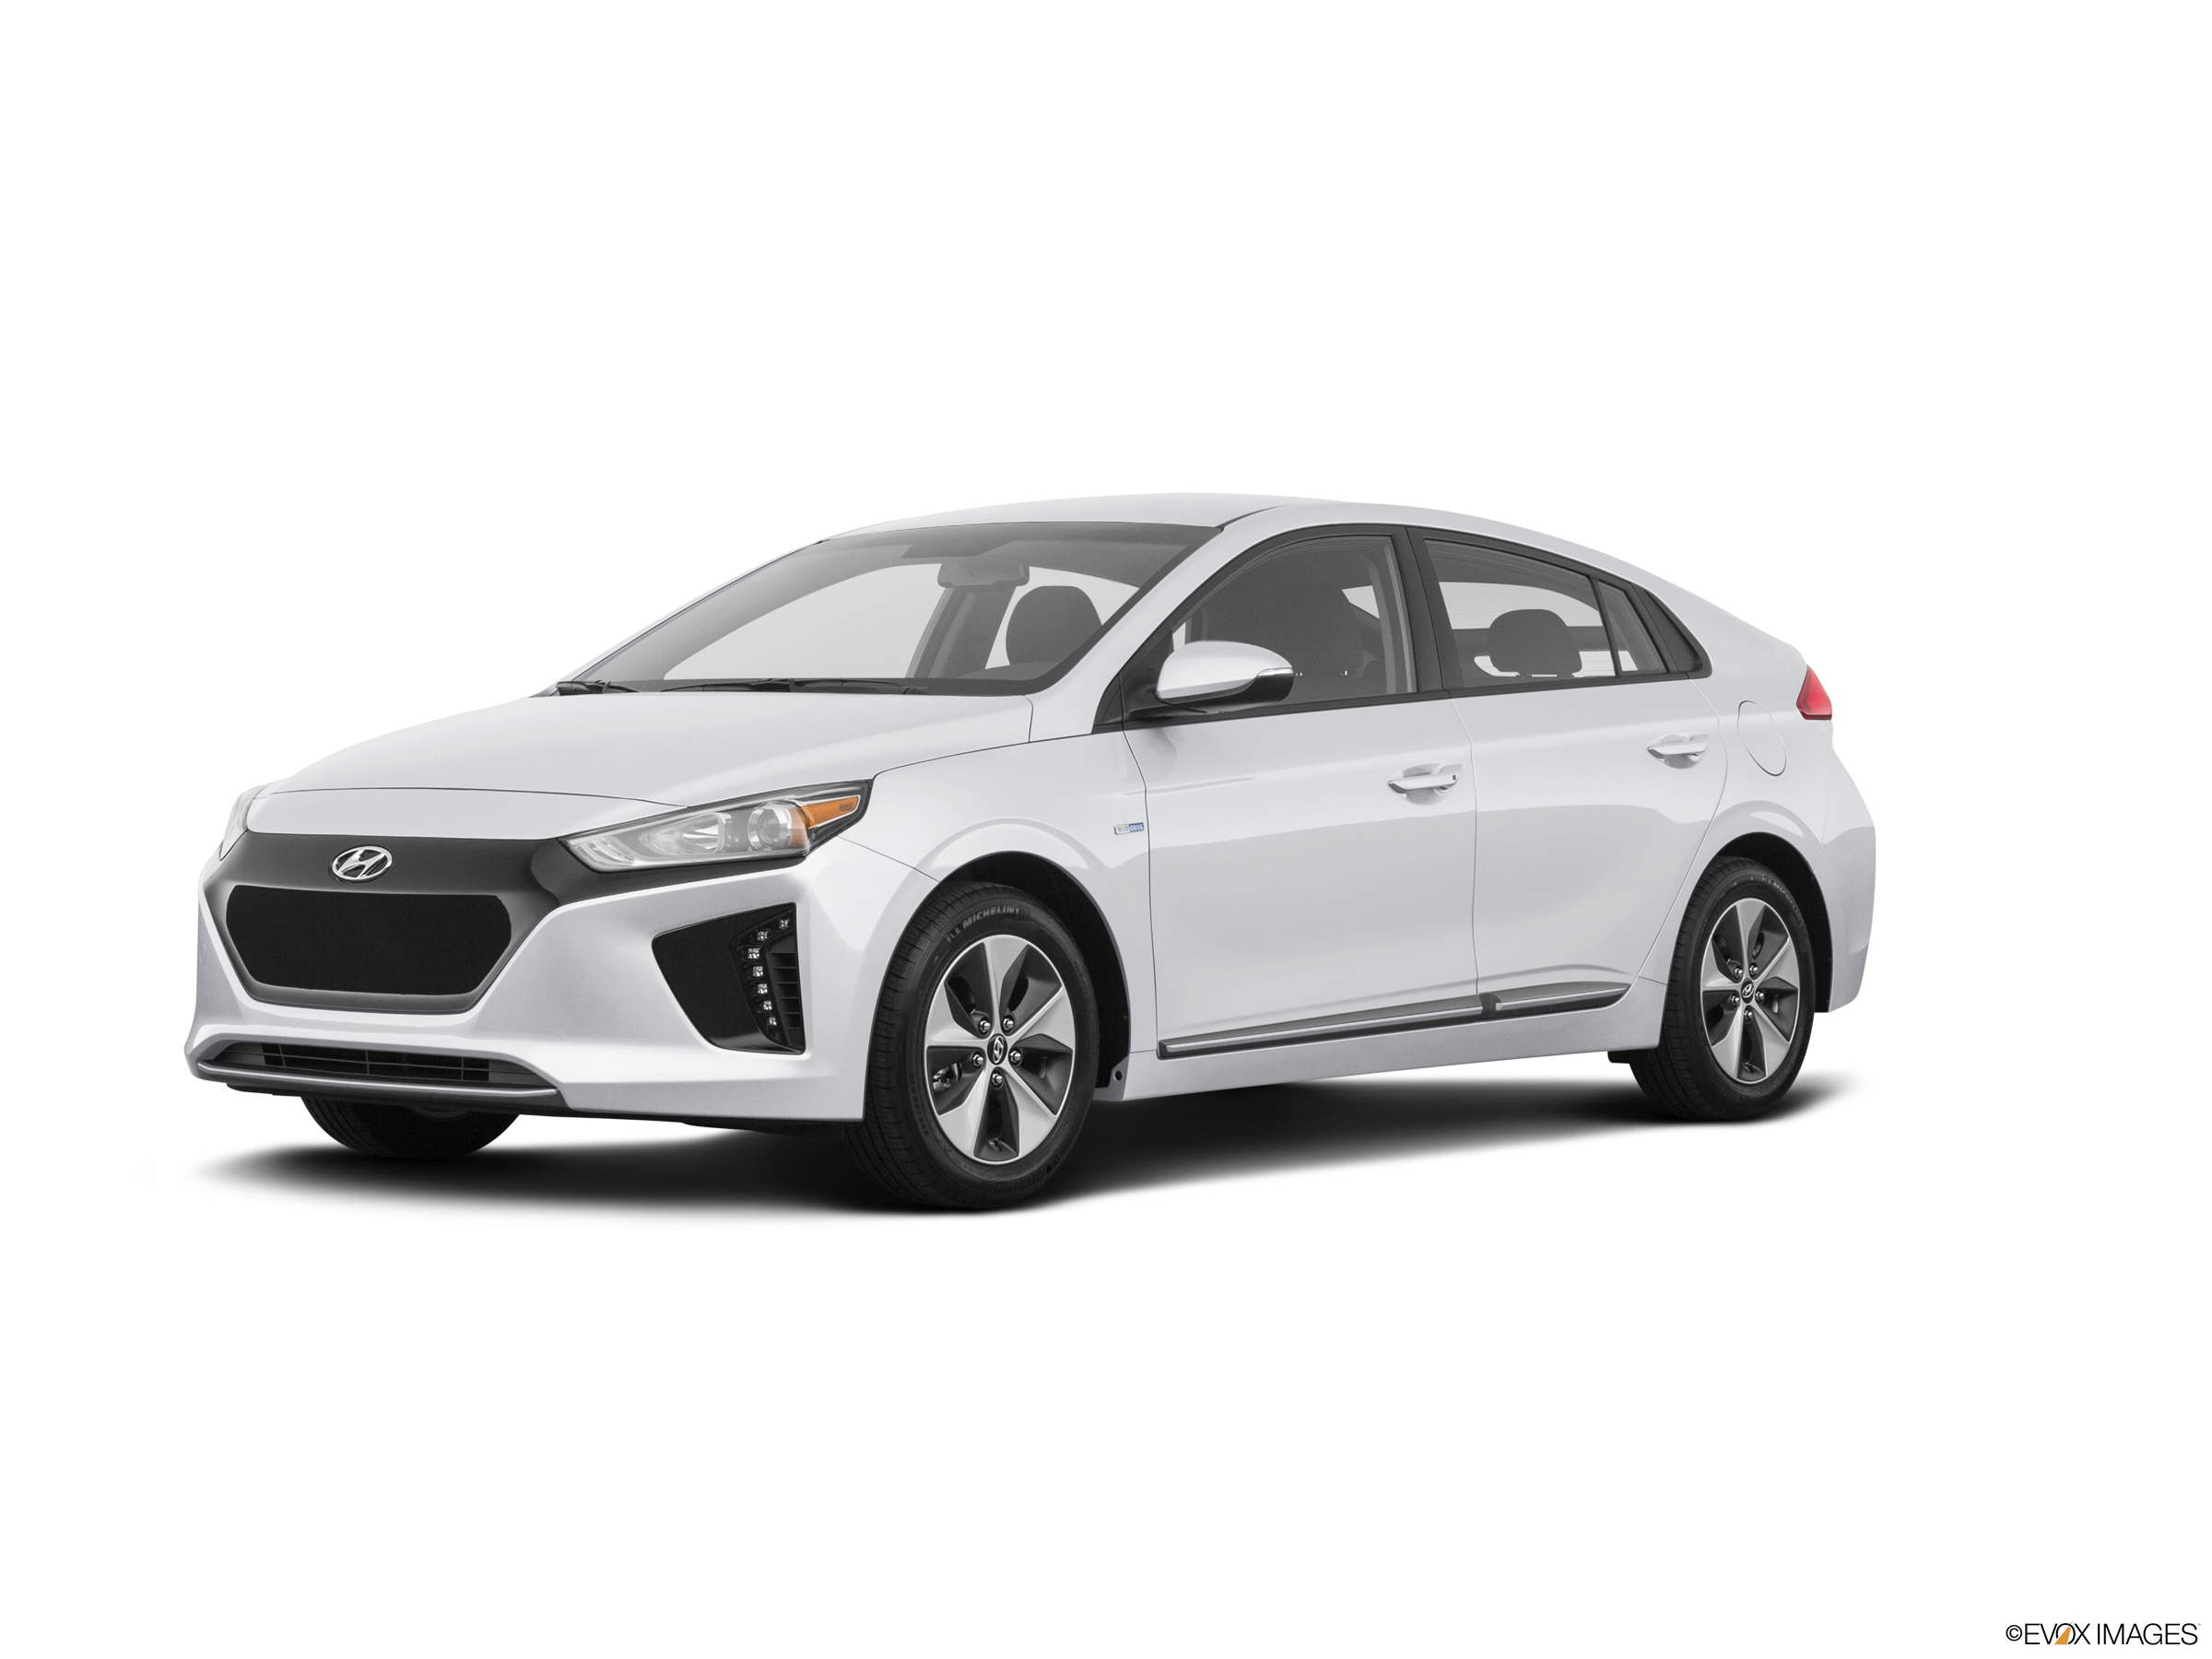 Most Fuel Efficient Electric Cars of 2019 - 2019 Hyundai Ioniq Electric